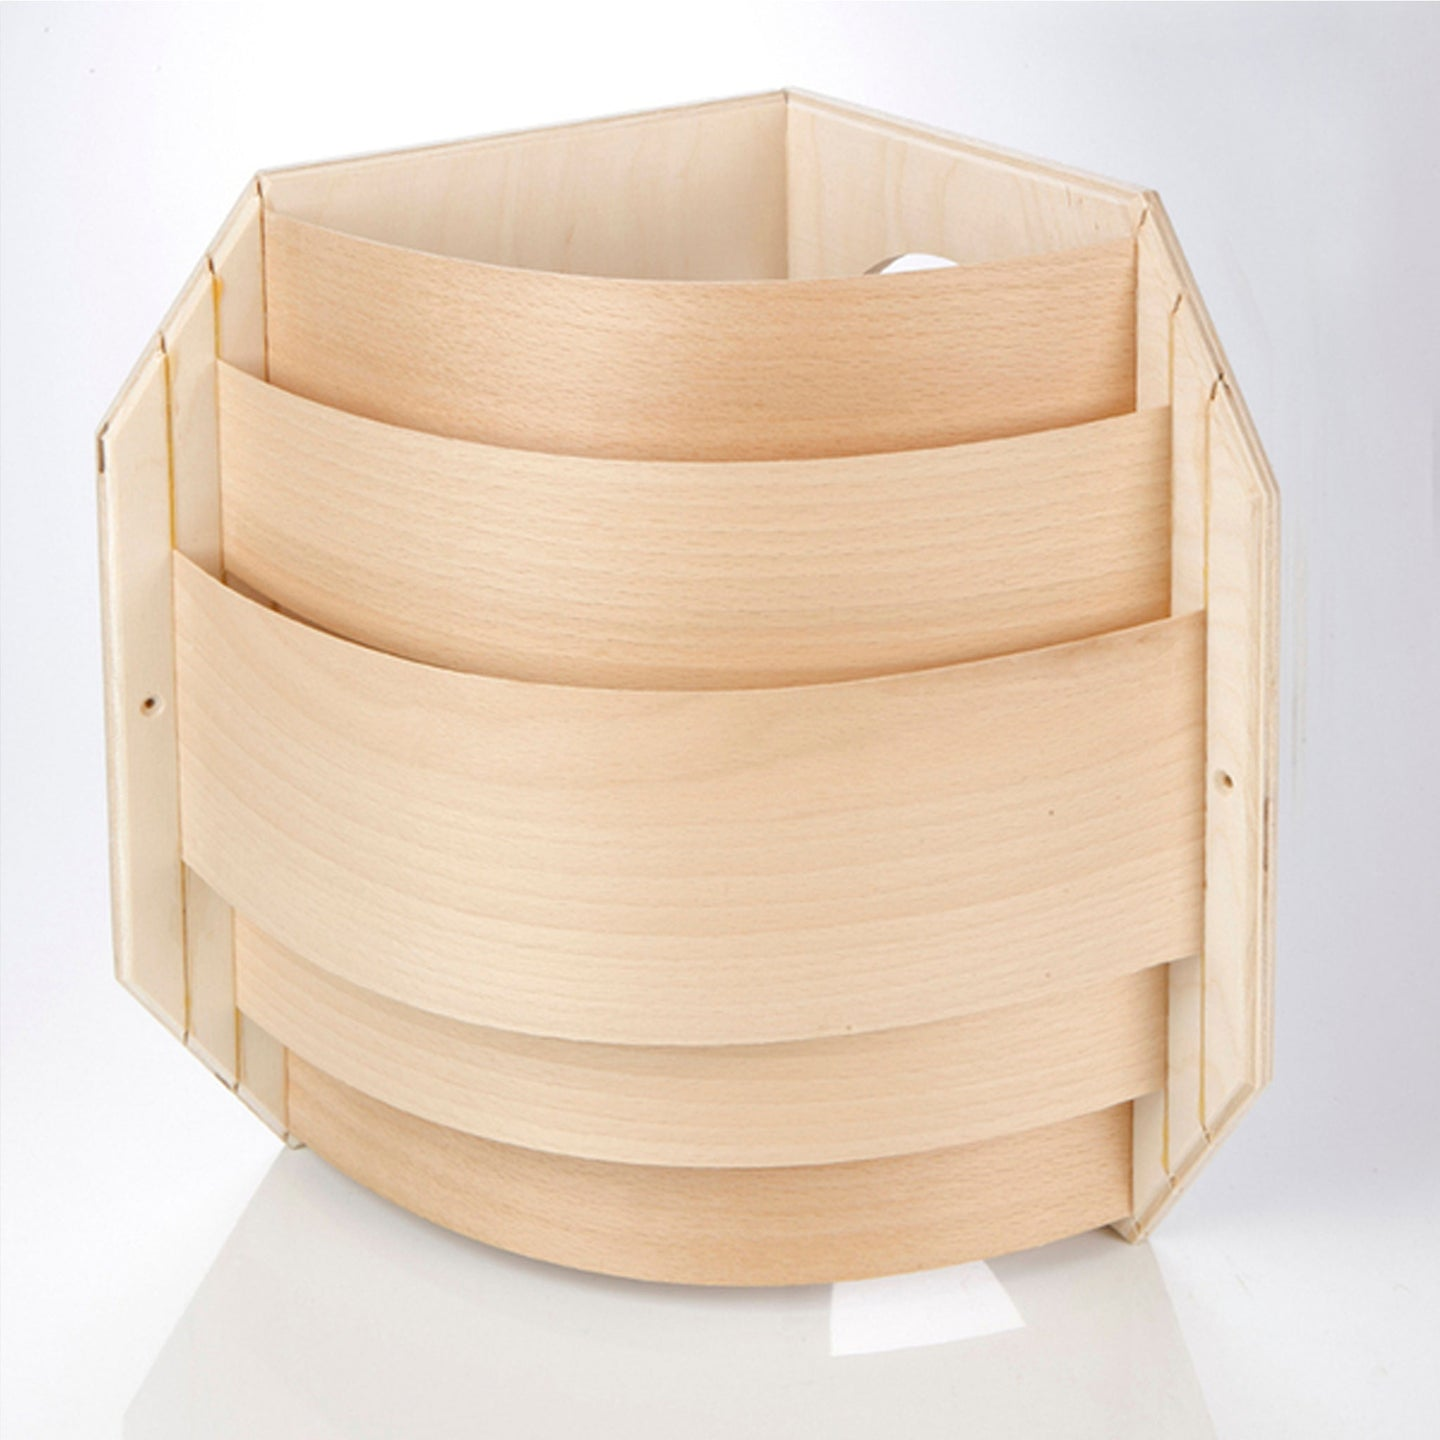 Wooden Corner Light Shade Screen Default Title light Finnmark Sauna